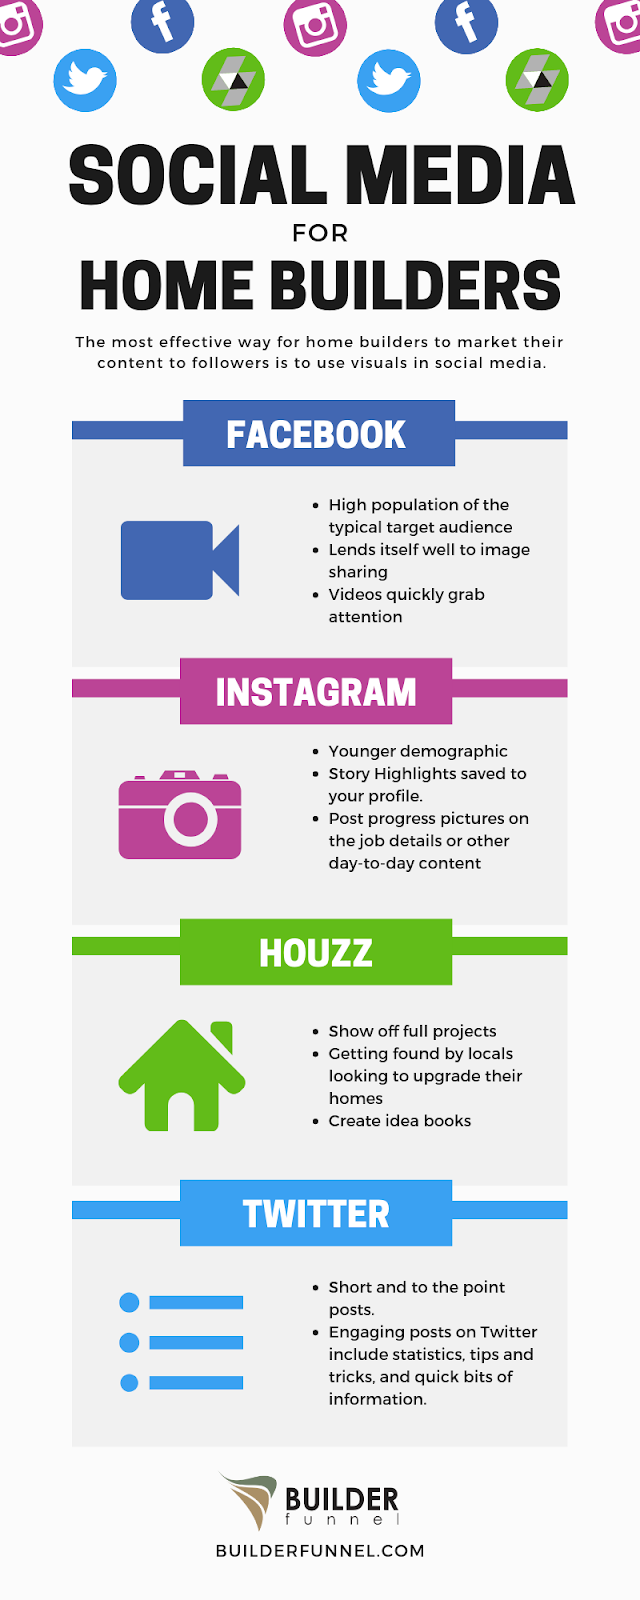 social media for home builders VisualFizz's Best Marketing Advice for Industrial and Construction Brands